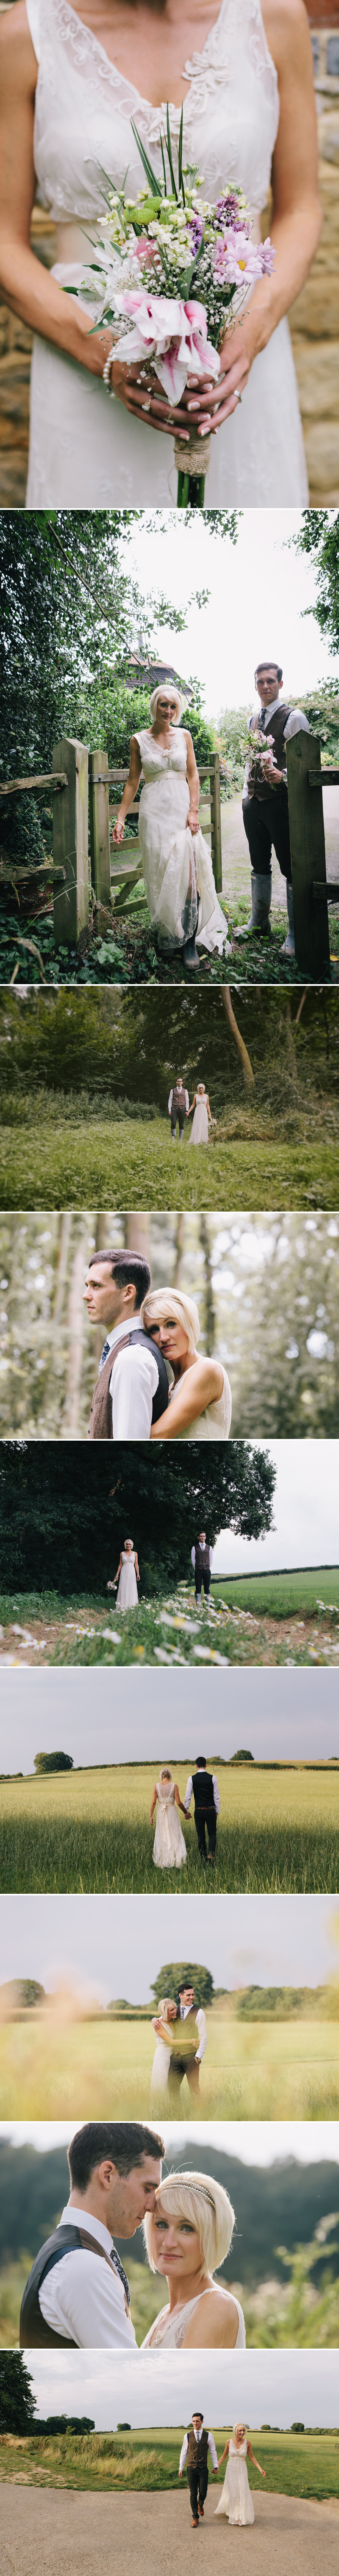 rustic-barn-wedding-venue-bartholomew-barn-west-sussex-coco-wedding-venues-brighton-photo-004